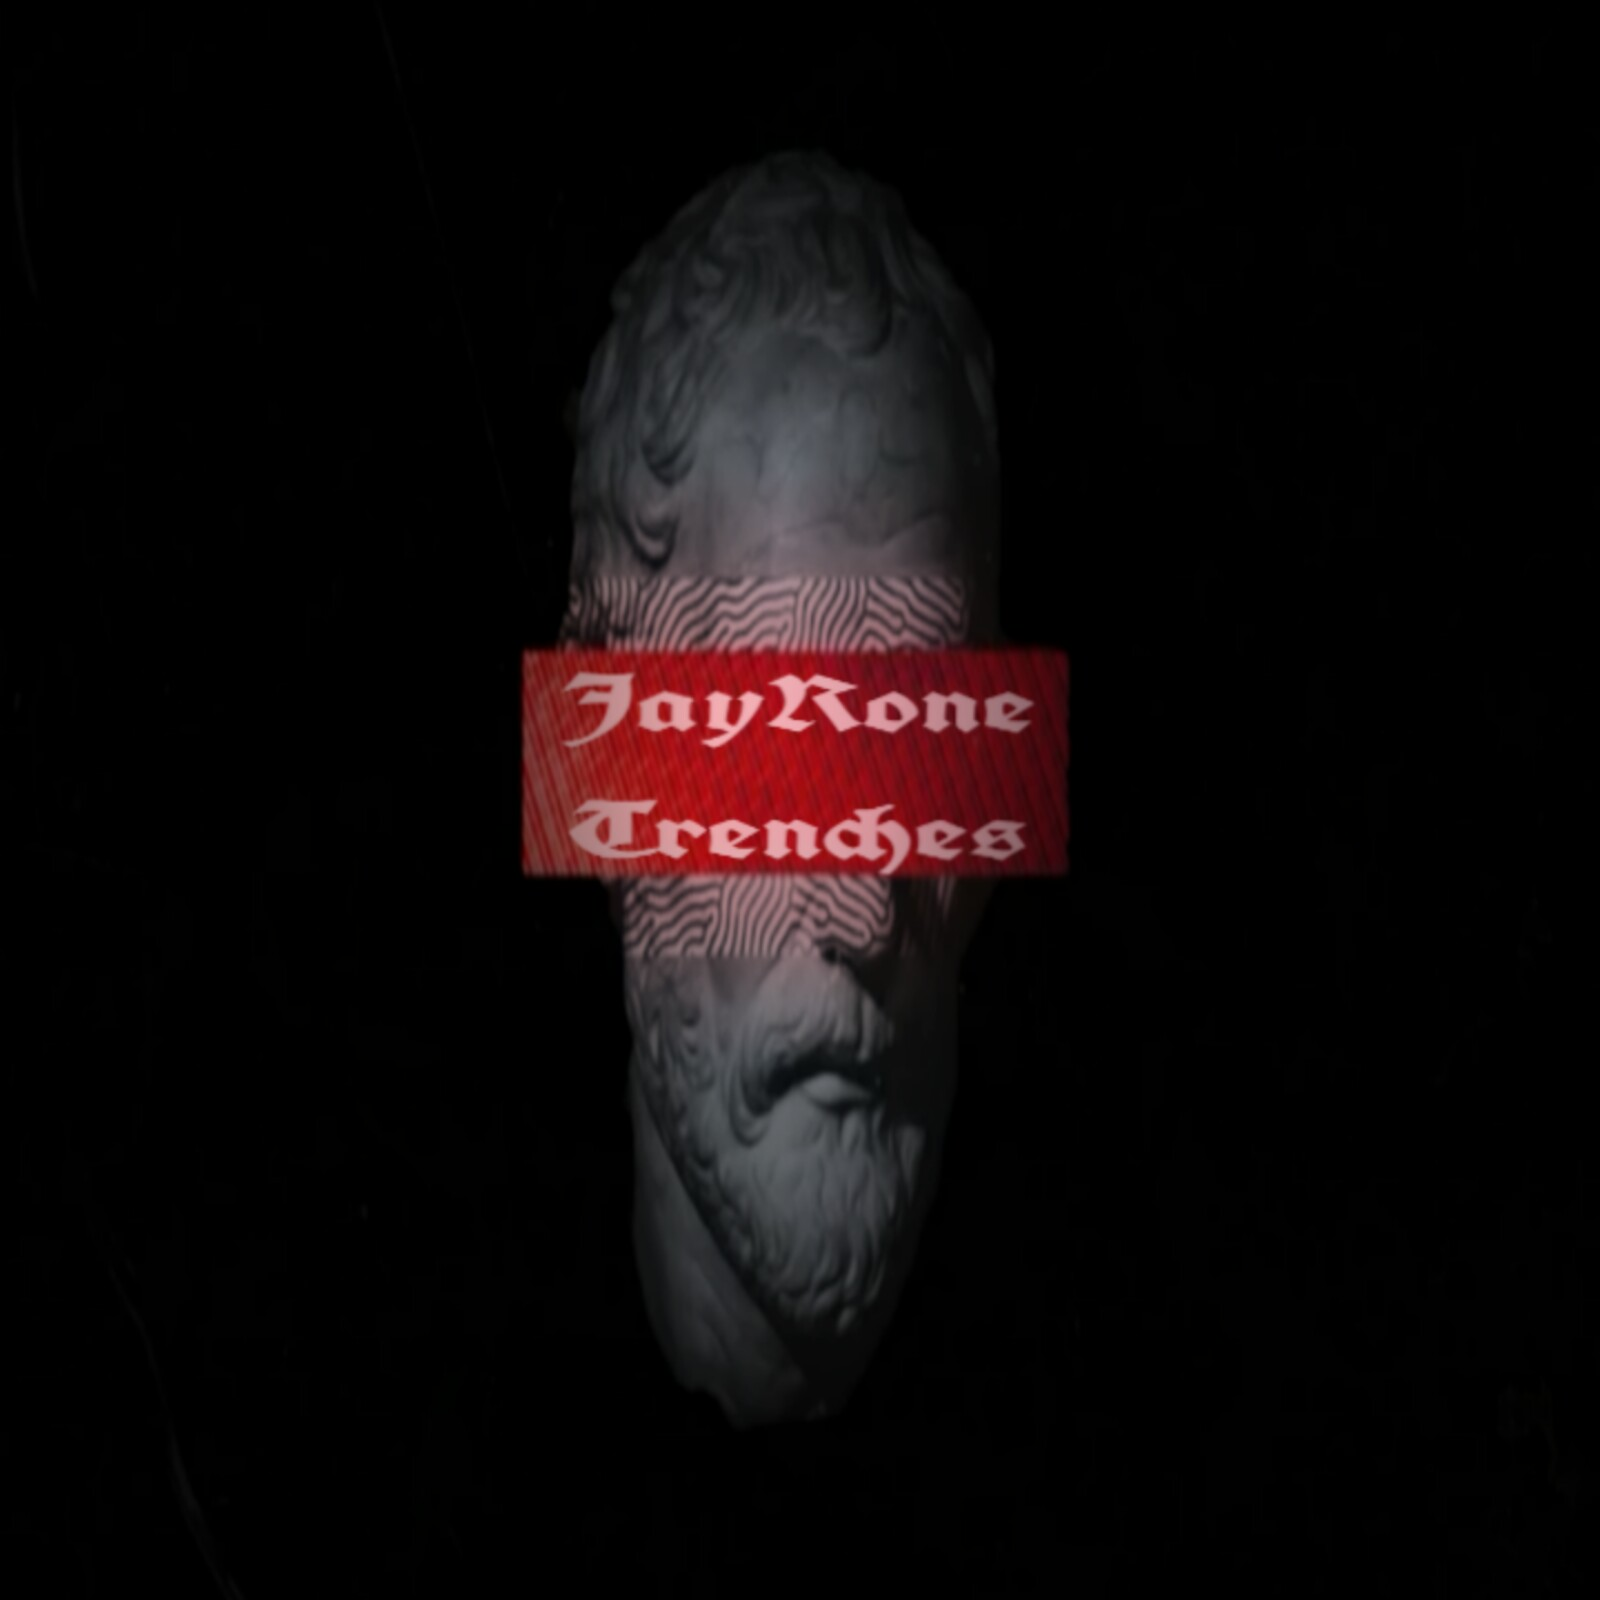 JayRone Trenches